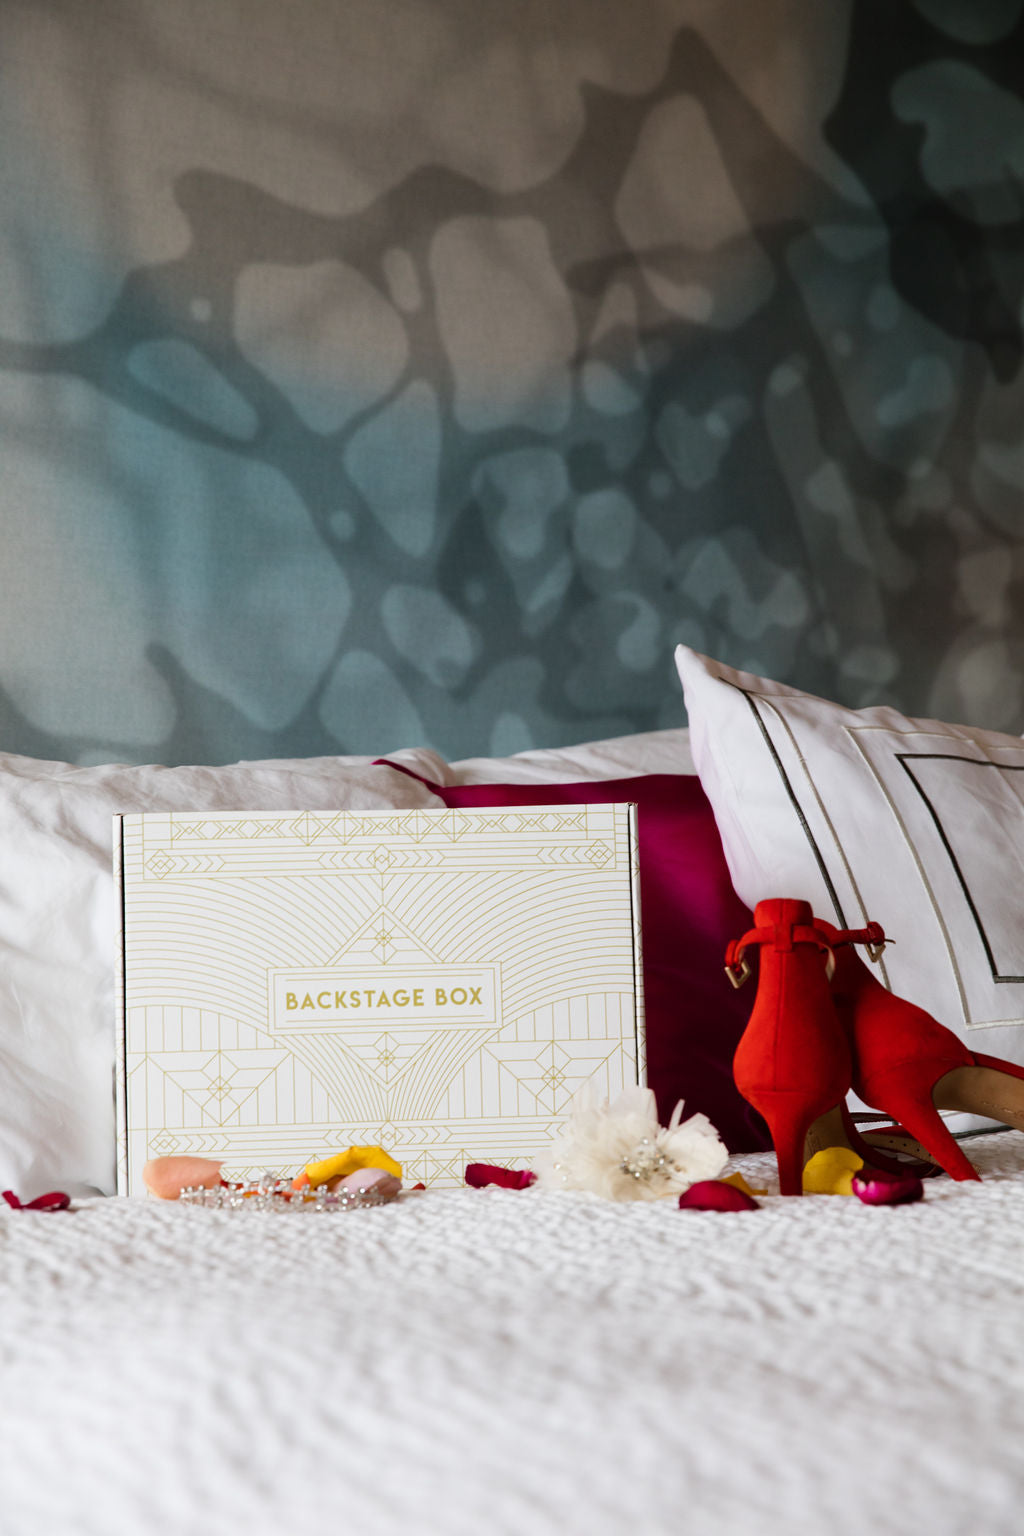 A white box with gold art deco designs and lettering on a bed with orange heels, rose petals and a crystal tiara.